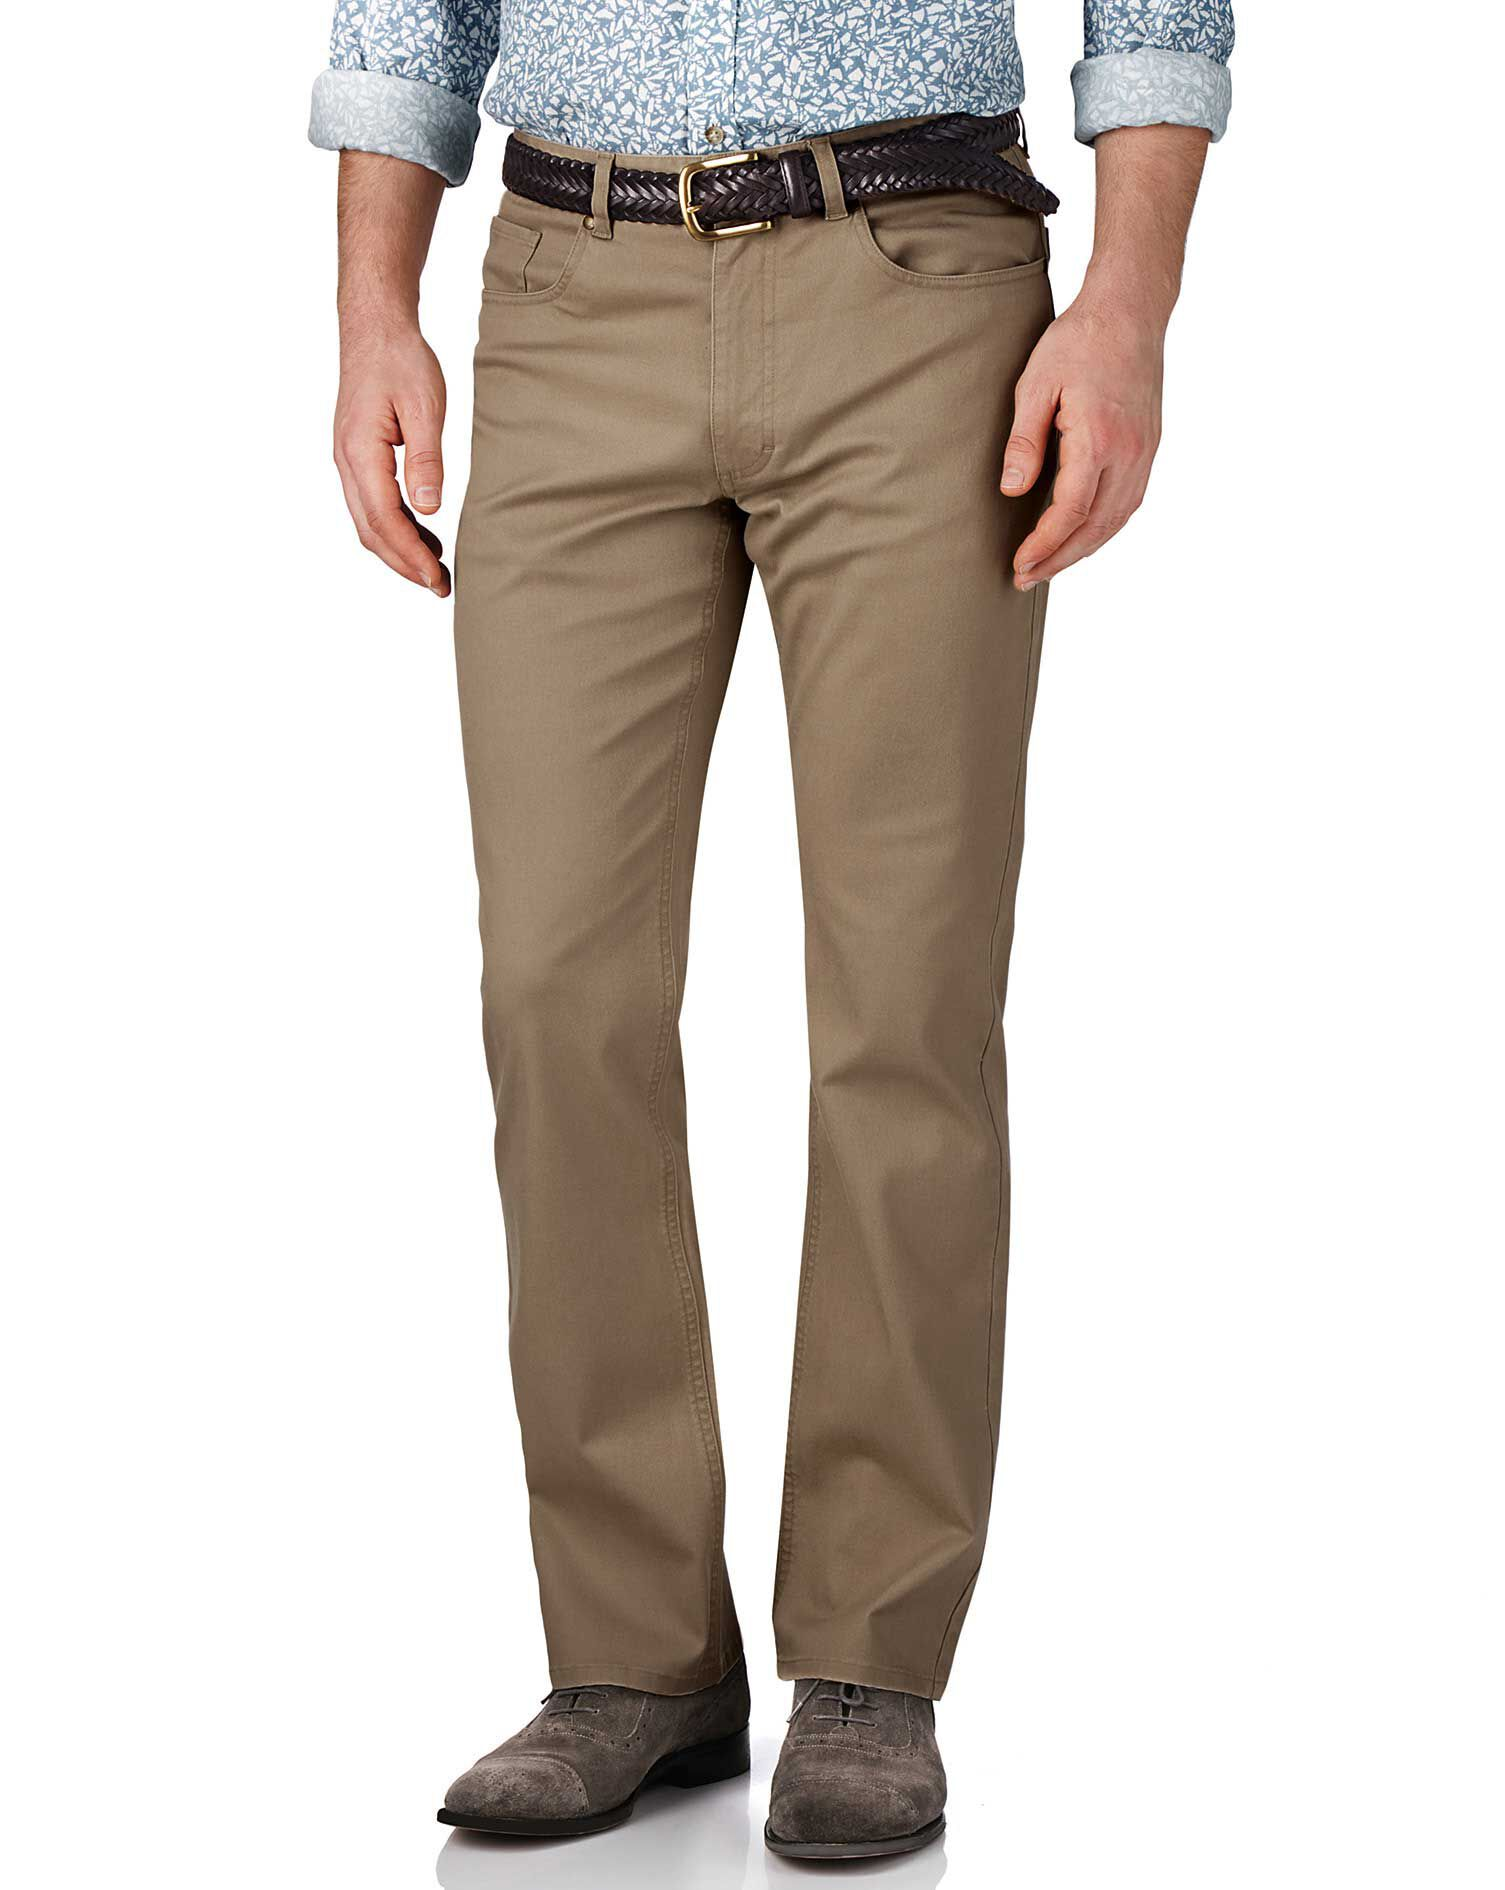 Stone Classic Fit Stretch Pique 5 Pocket Trousers Size W38 L32 by Charles Tyrwhitt